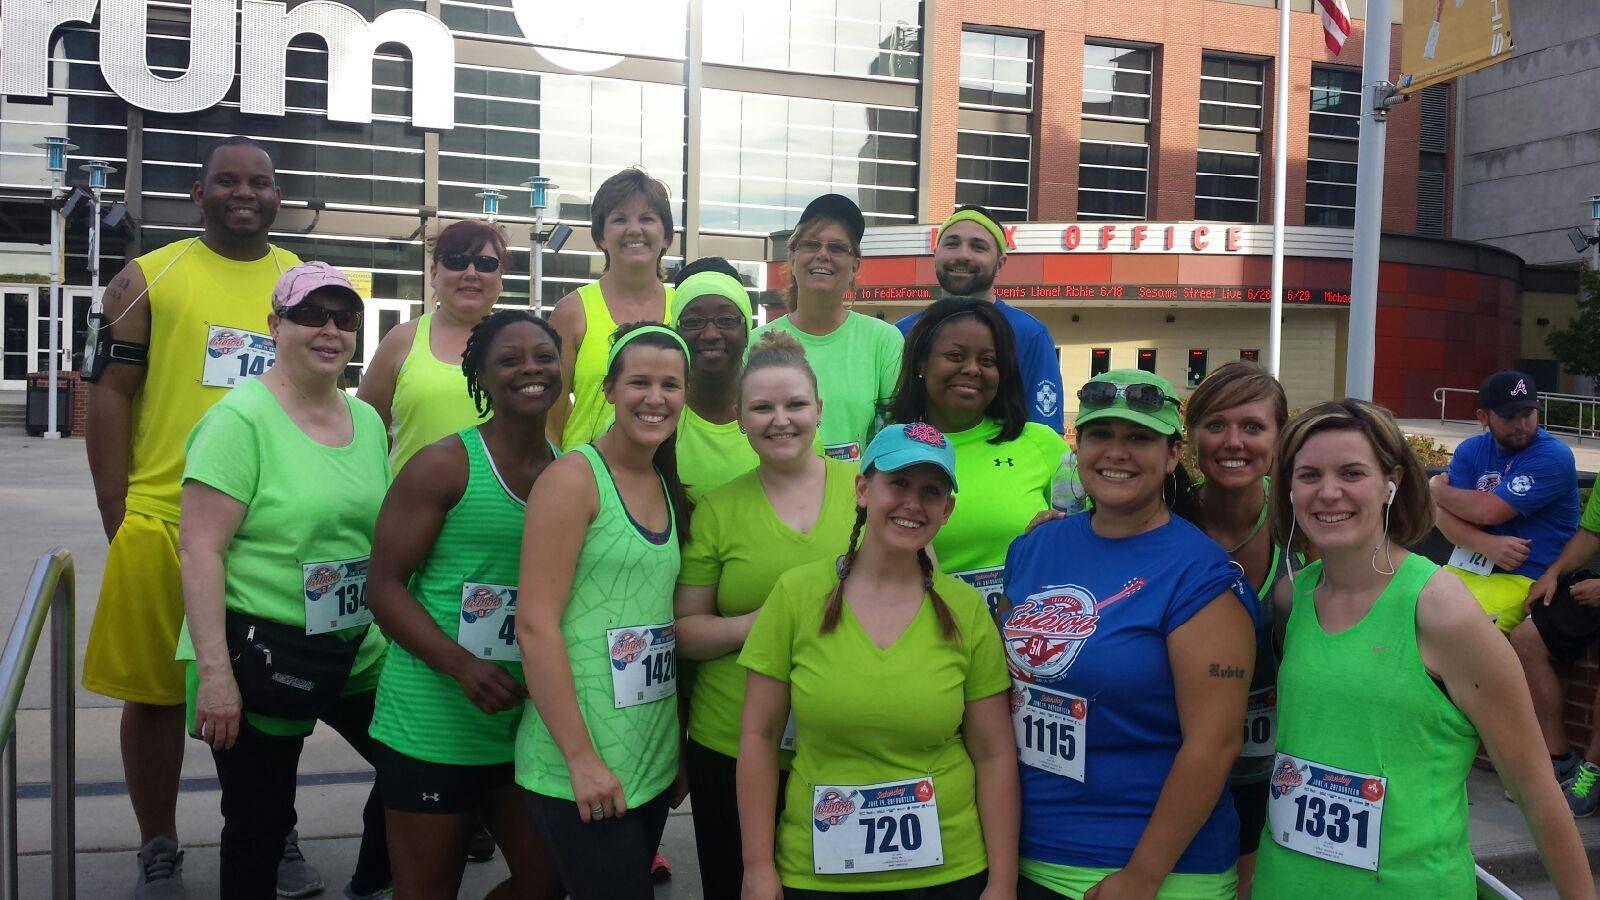 30 employees from First South participated in the 2014 Gibson Guitar 5K race in downtown Memphis. We're dedicated to reaching a healthier lifestyle together!